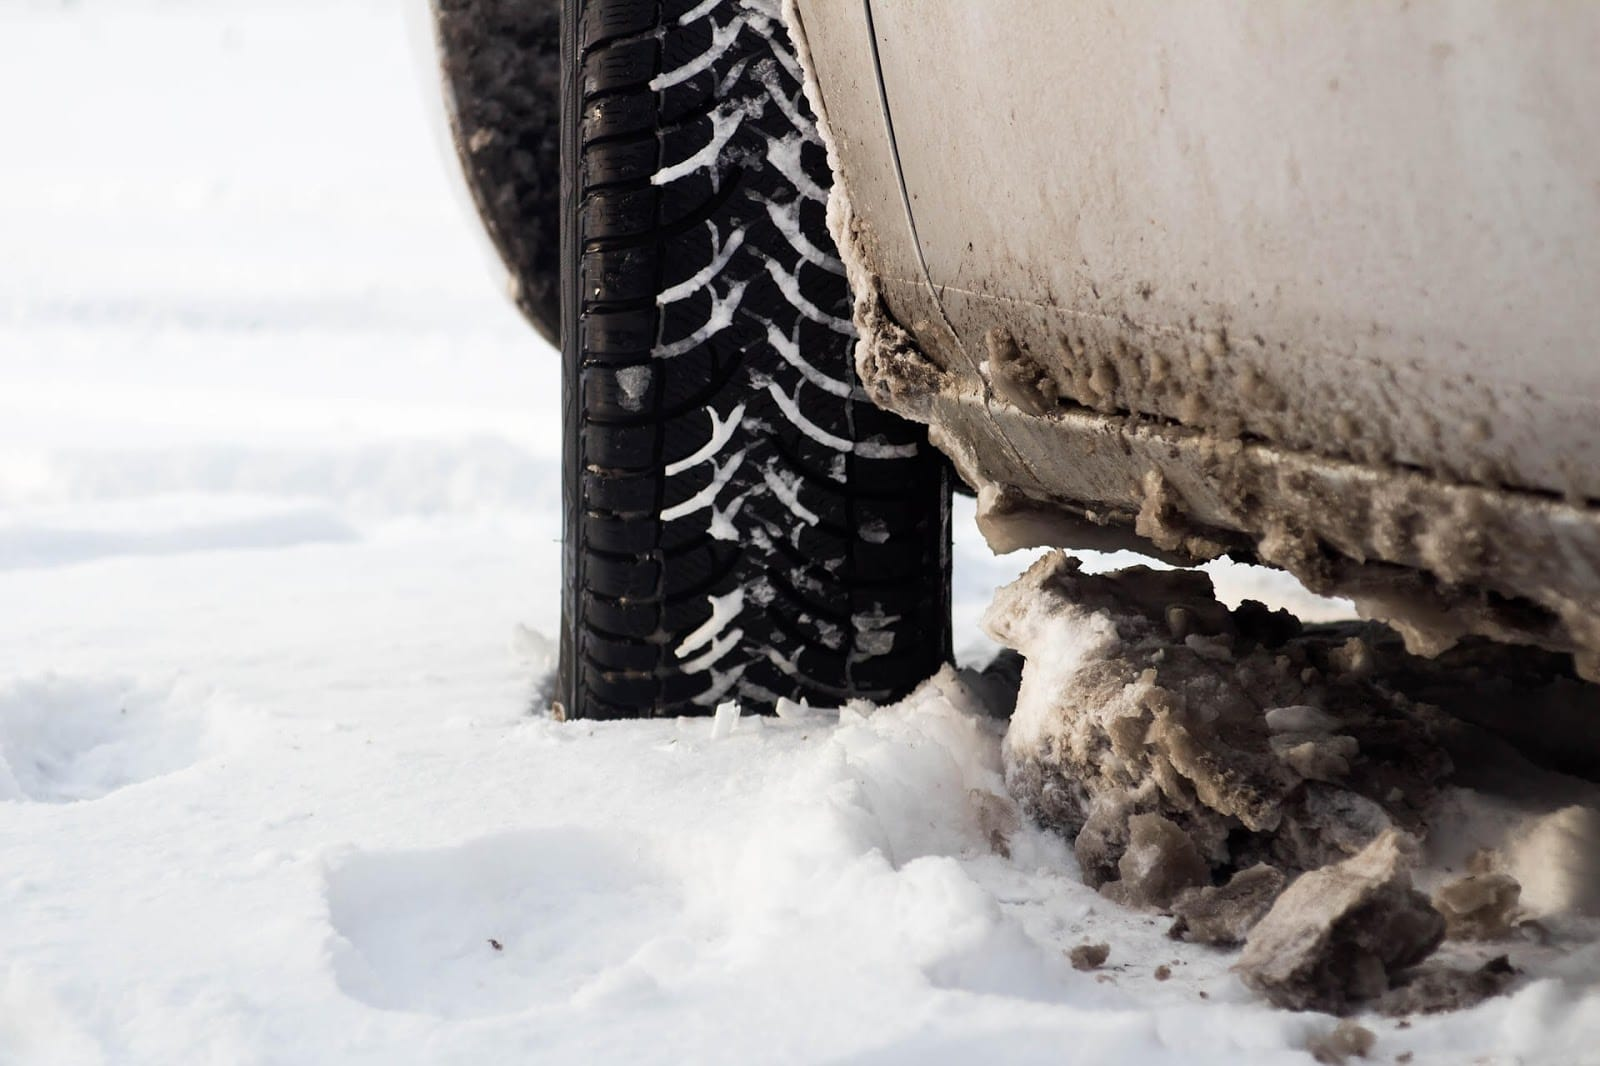 How to Remove Studs From Tires at Home: Make Your Winter Tires Summer-Appropriate